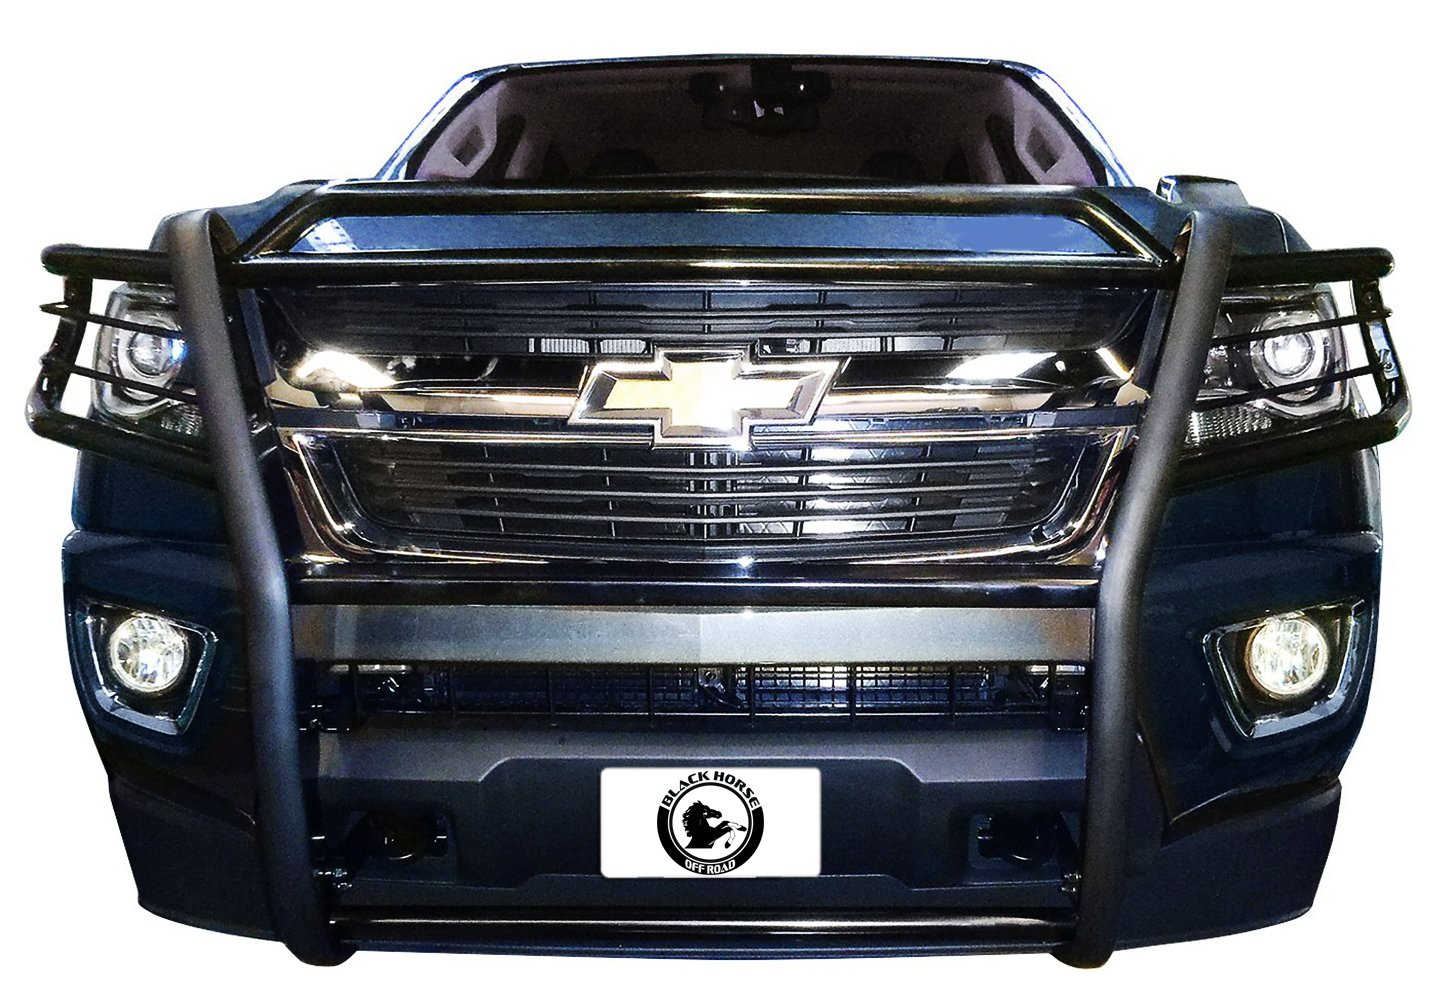 BLACK HORSE 17GC15MA Black Grille Guard